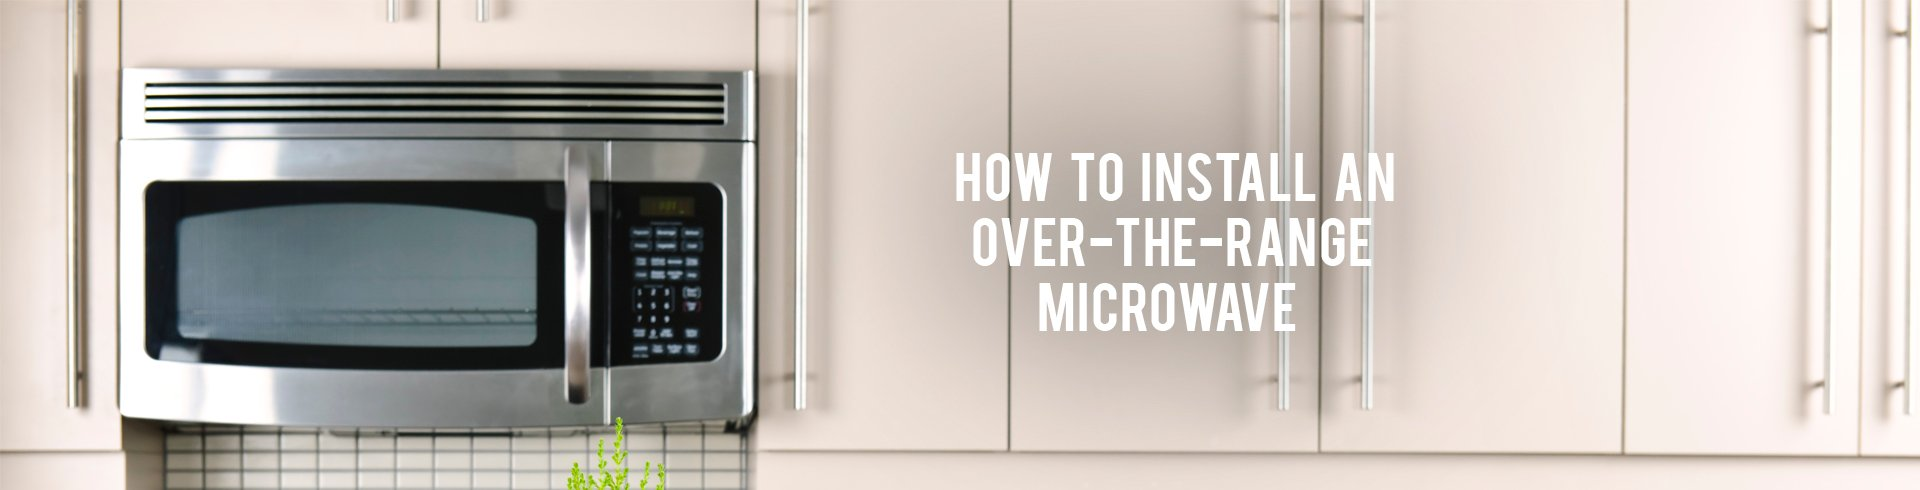 Installation of an over the range microwave - Installation Of An Over The Range Microwave 53